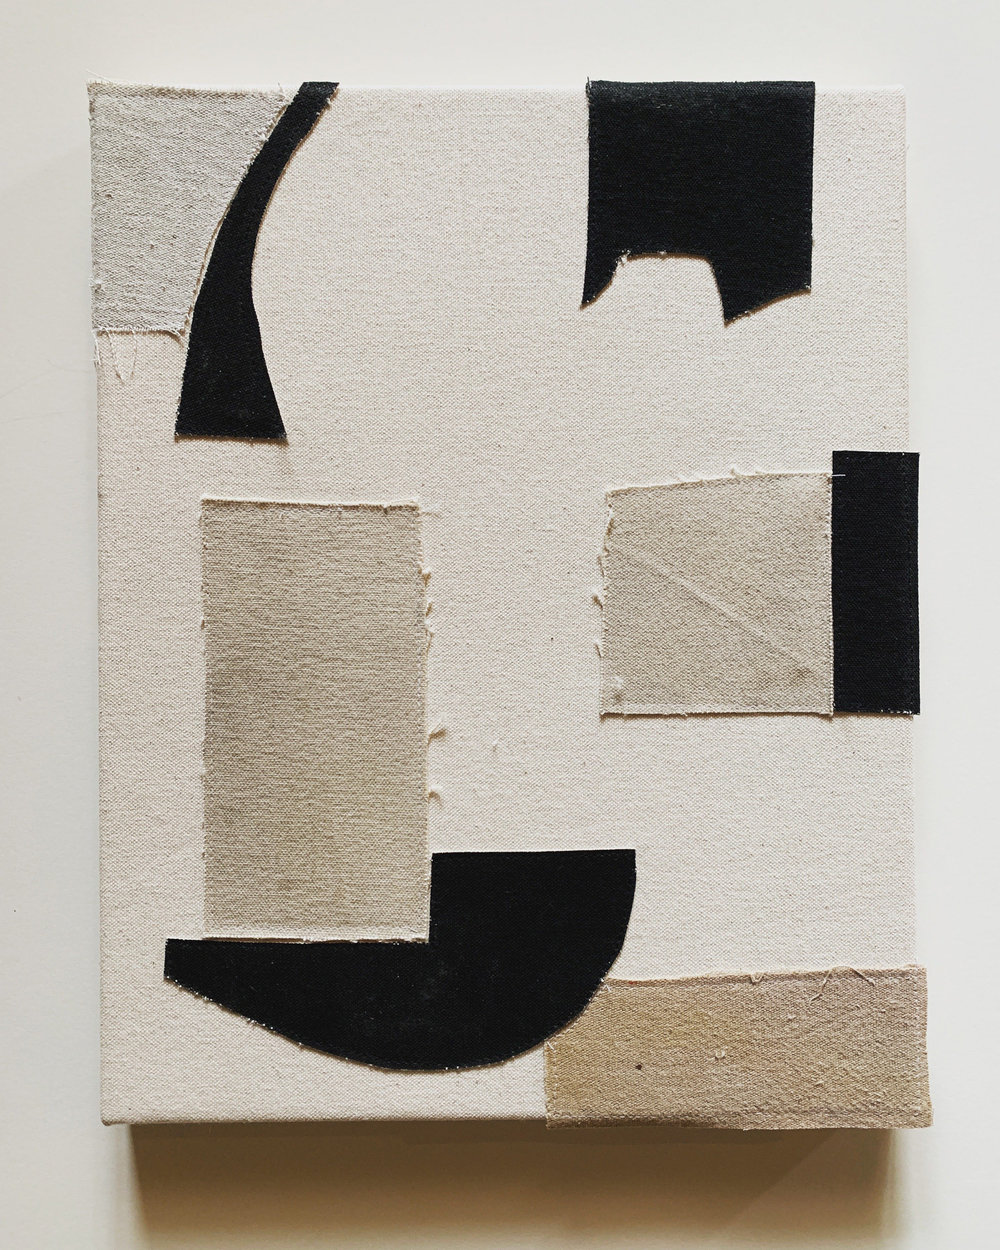 Jonathan Parker SC #100, 2019 Acrylic on canvas, sewn 14 x 11 inches